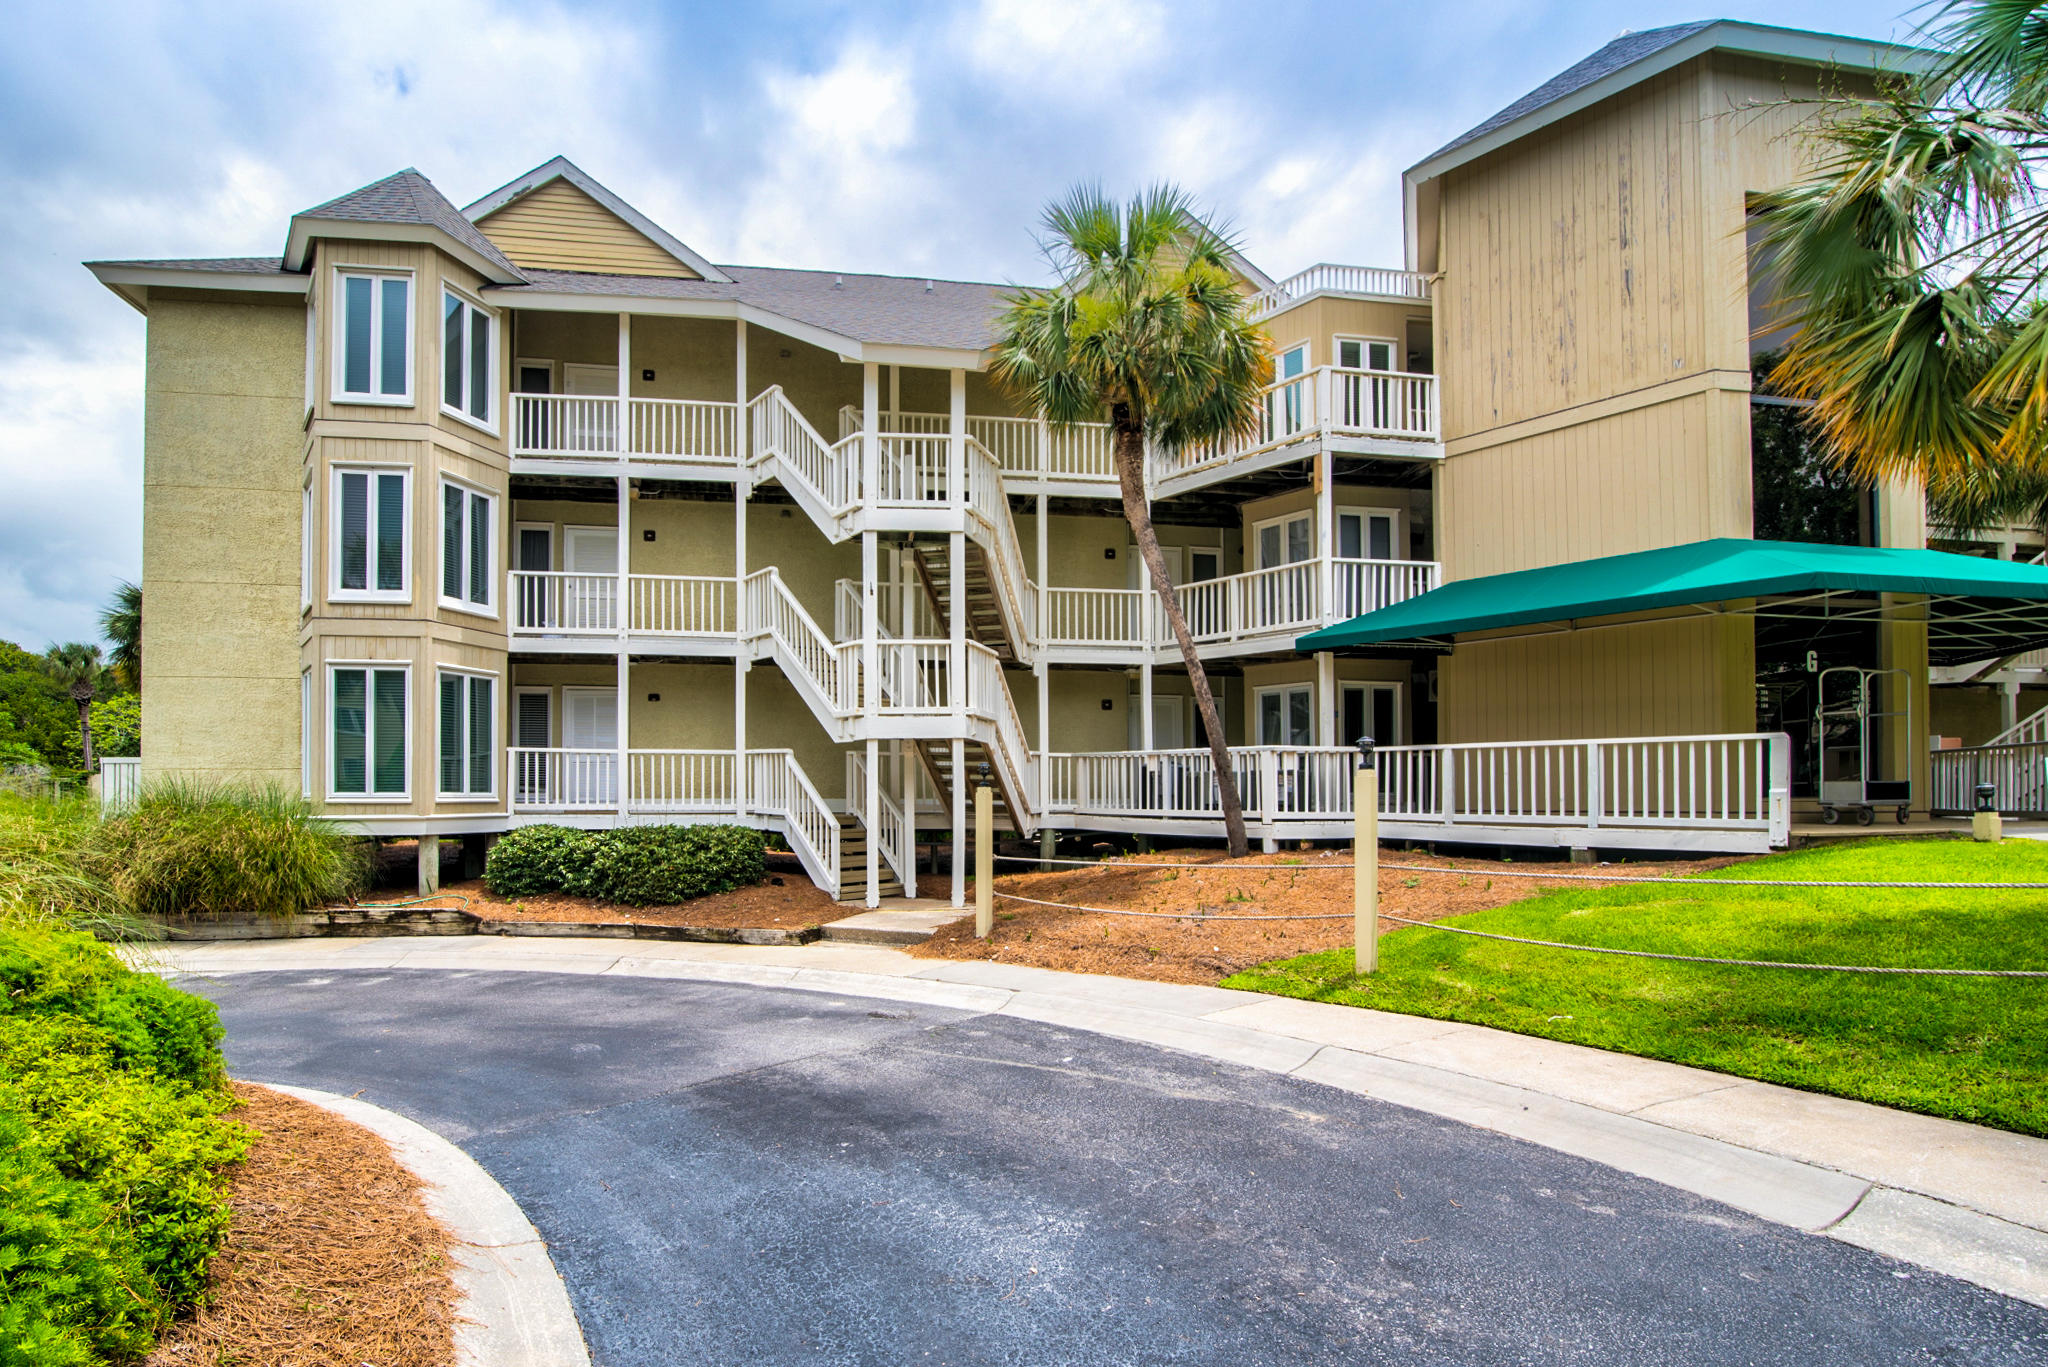 Wild Dunes Homes For Sale - 103 Port O' Call, Isle of Palms, SC - 0